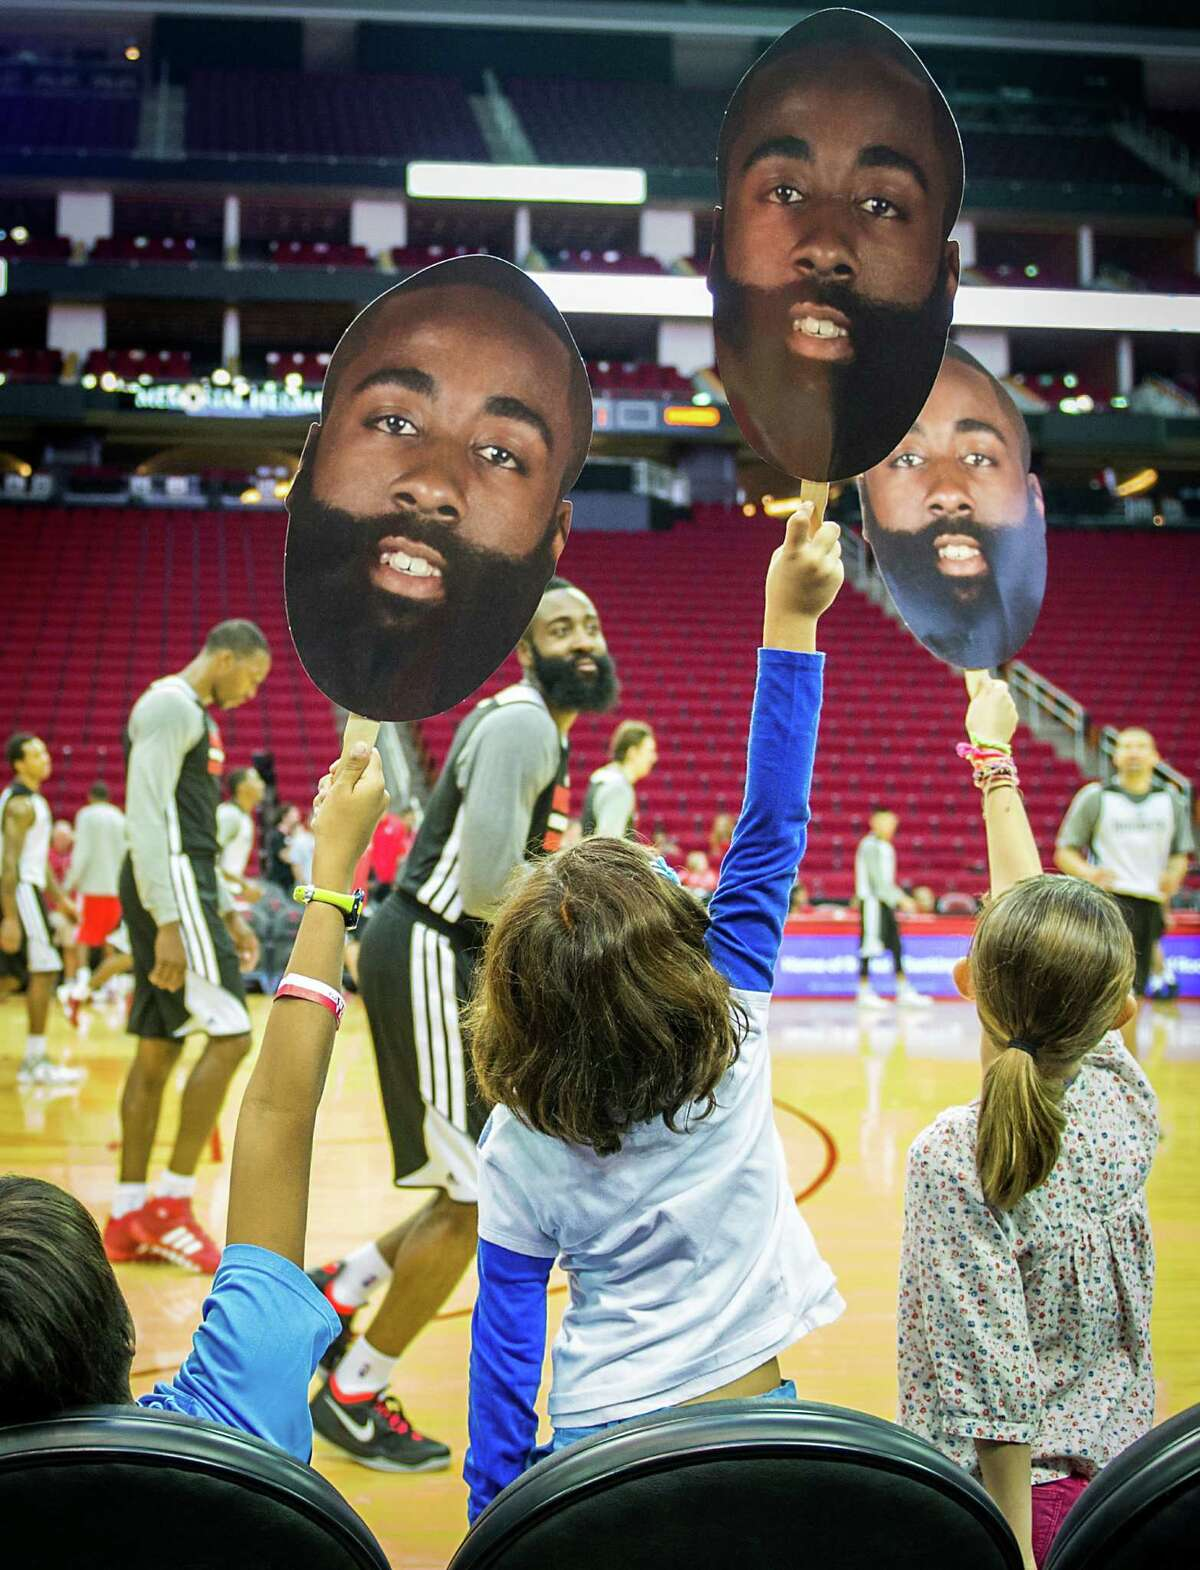 Fans at an open practice Sunday at Toyota Center show their devotion to Rockets shooting guard James Harden, who smiles in appreciation. The sentiment took root early when, in Harden's first game as a Rocket last season, he scored 37 points.